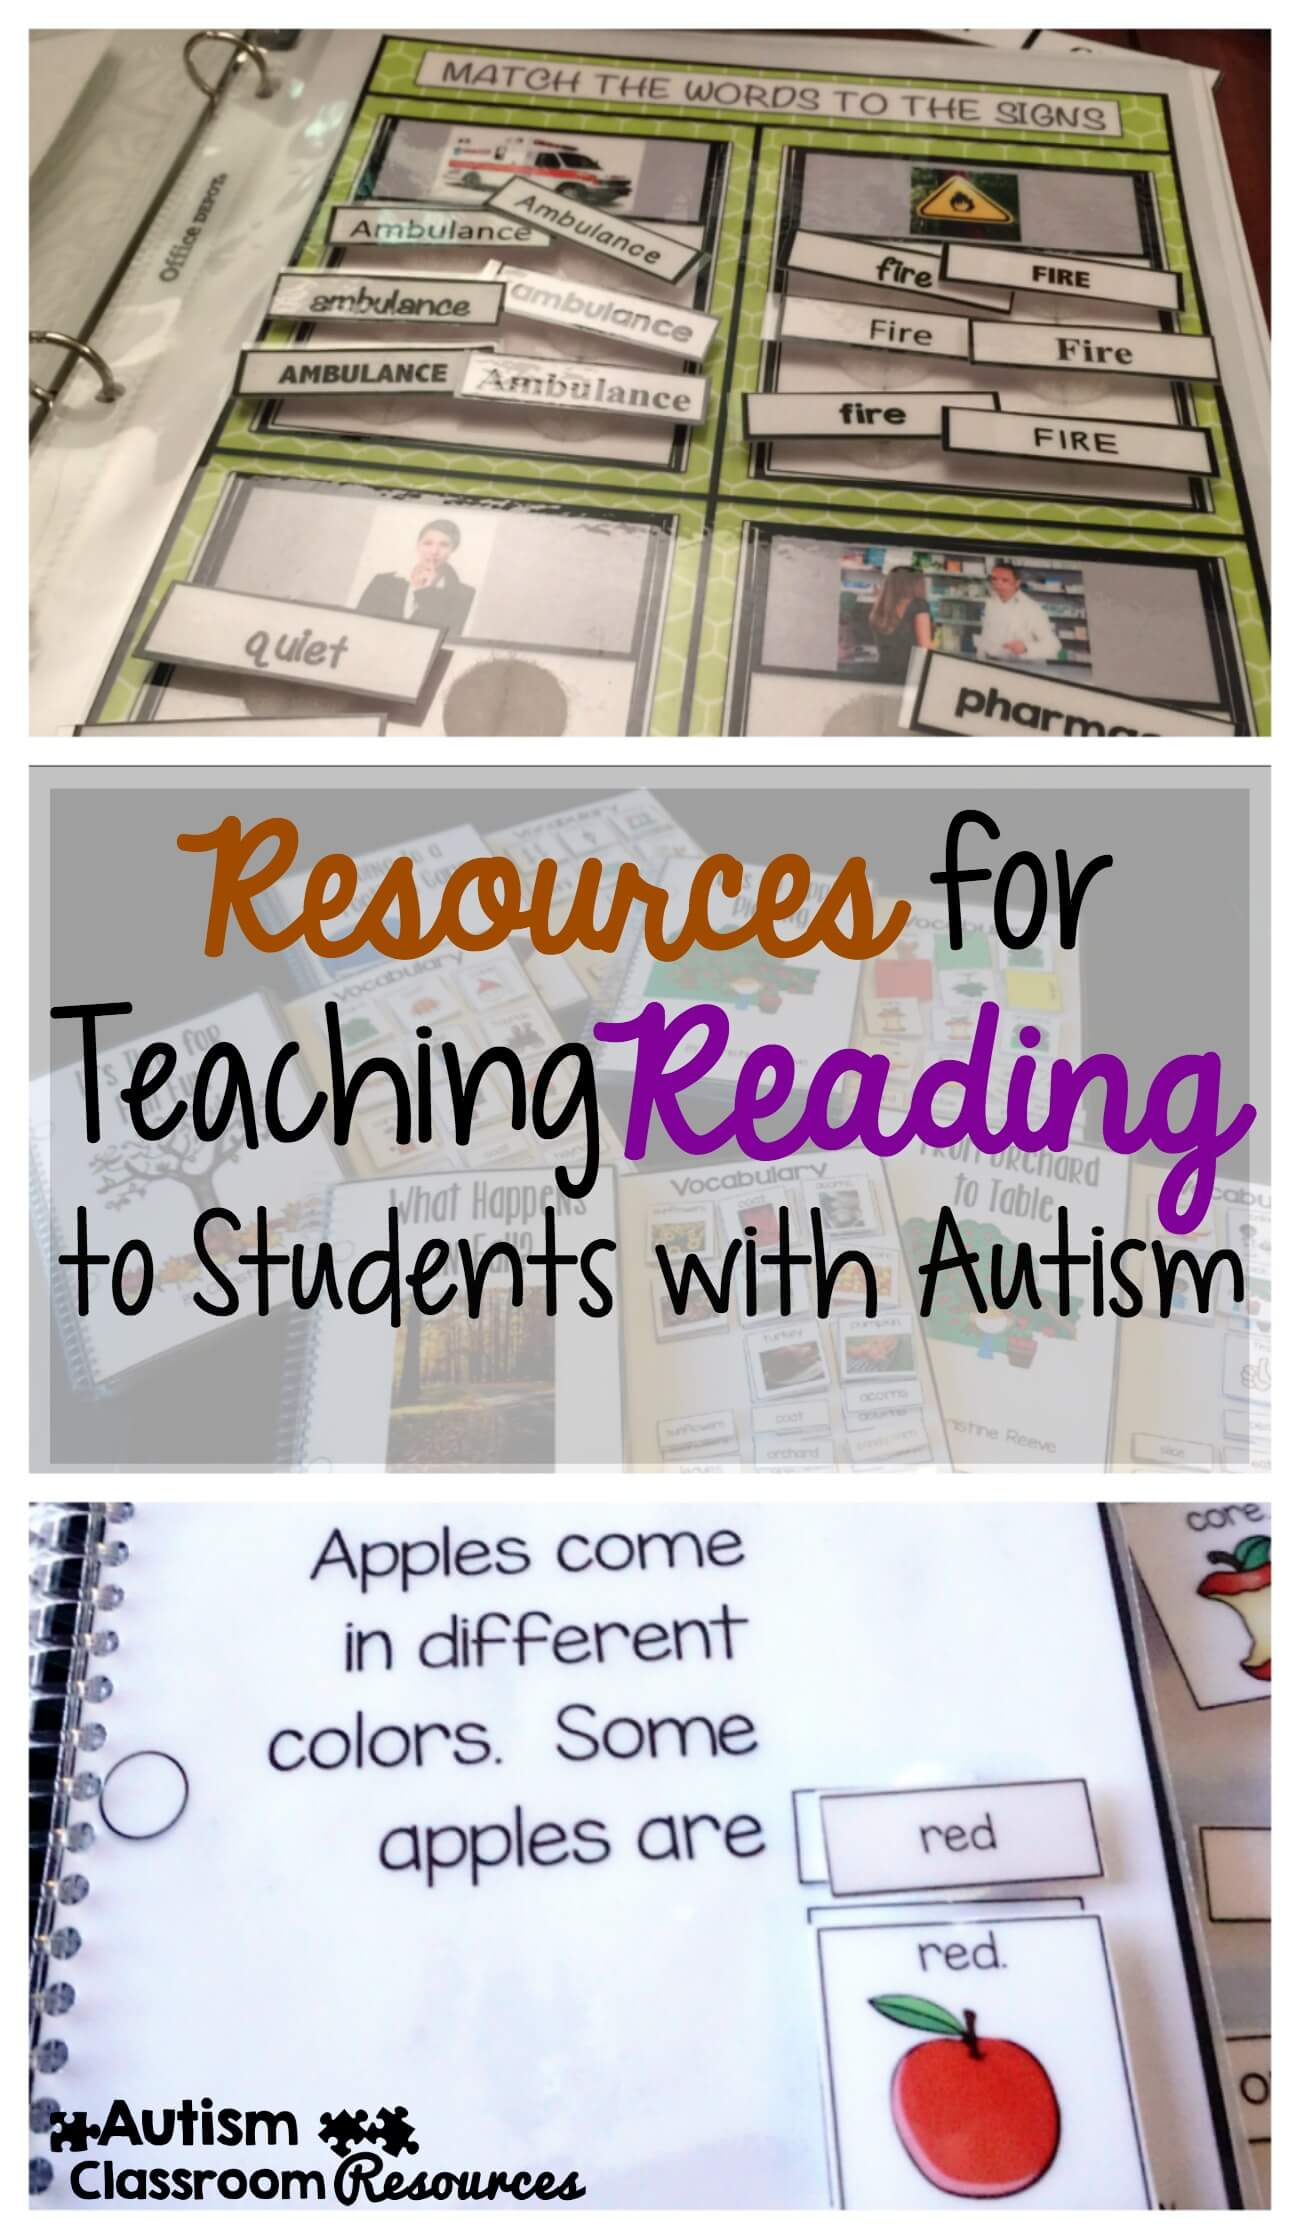 Math Worksheet Resources For Teaching Reading To Students With Autism ...